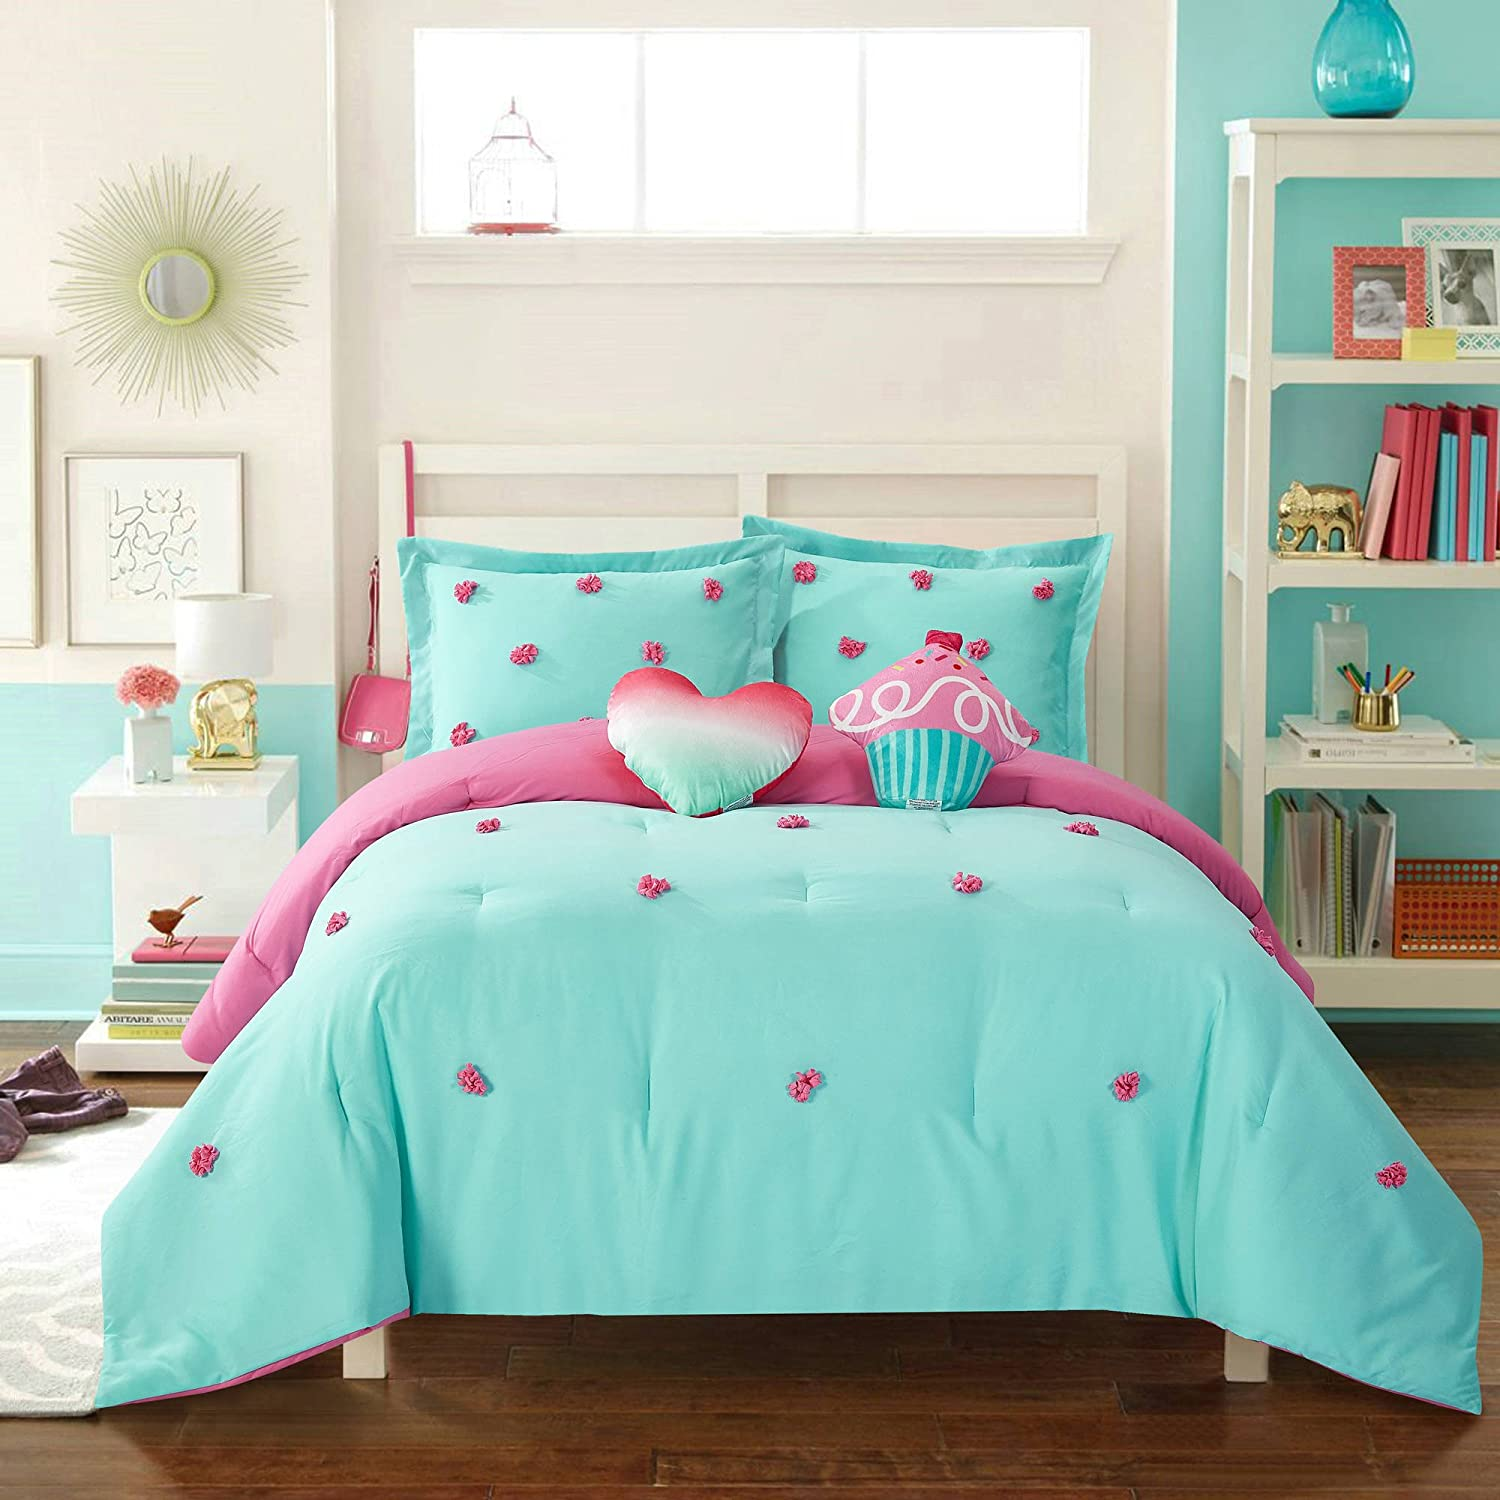 Adorable, Soft, Durable and Easy to Maintain Better Homes and Gardens Kids Pom Pom Comforter Set, Aqua/Blue, Pink, Full/Queen